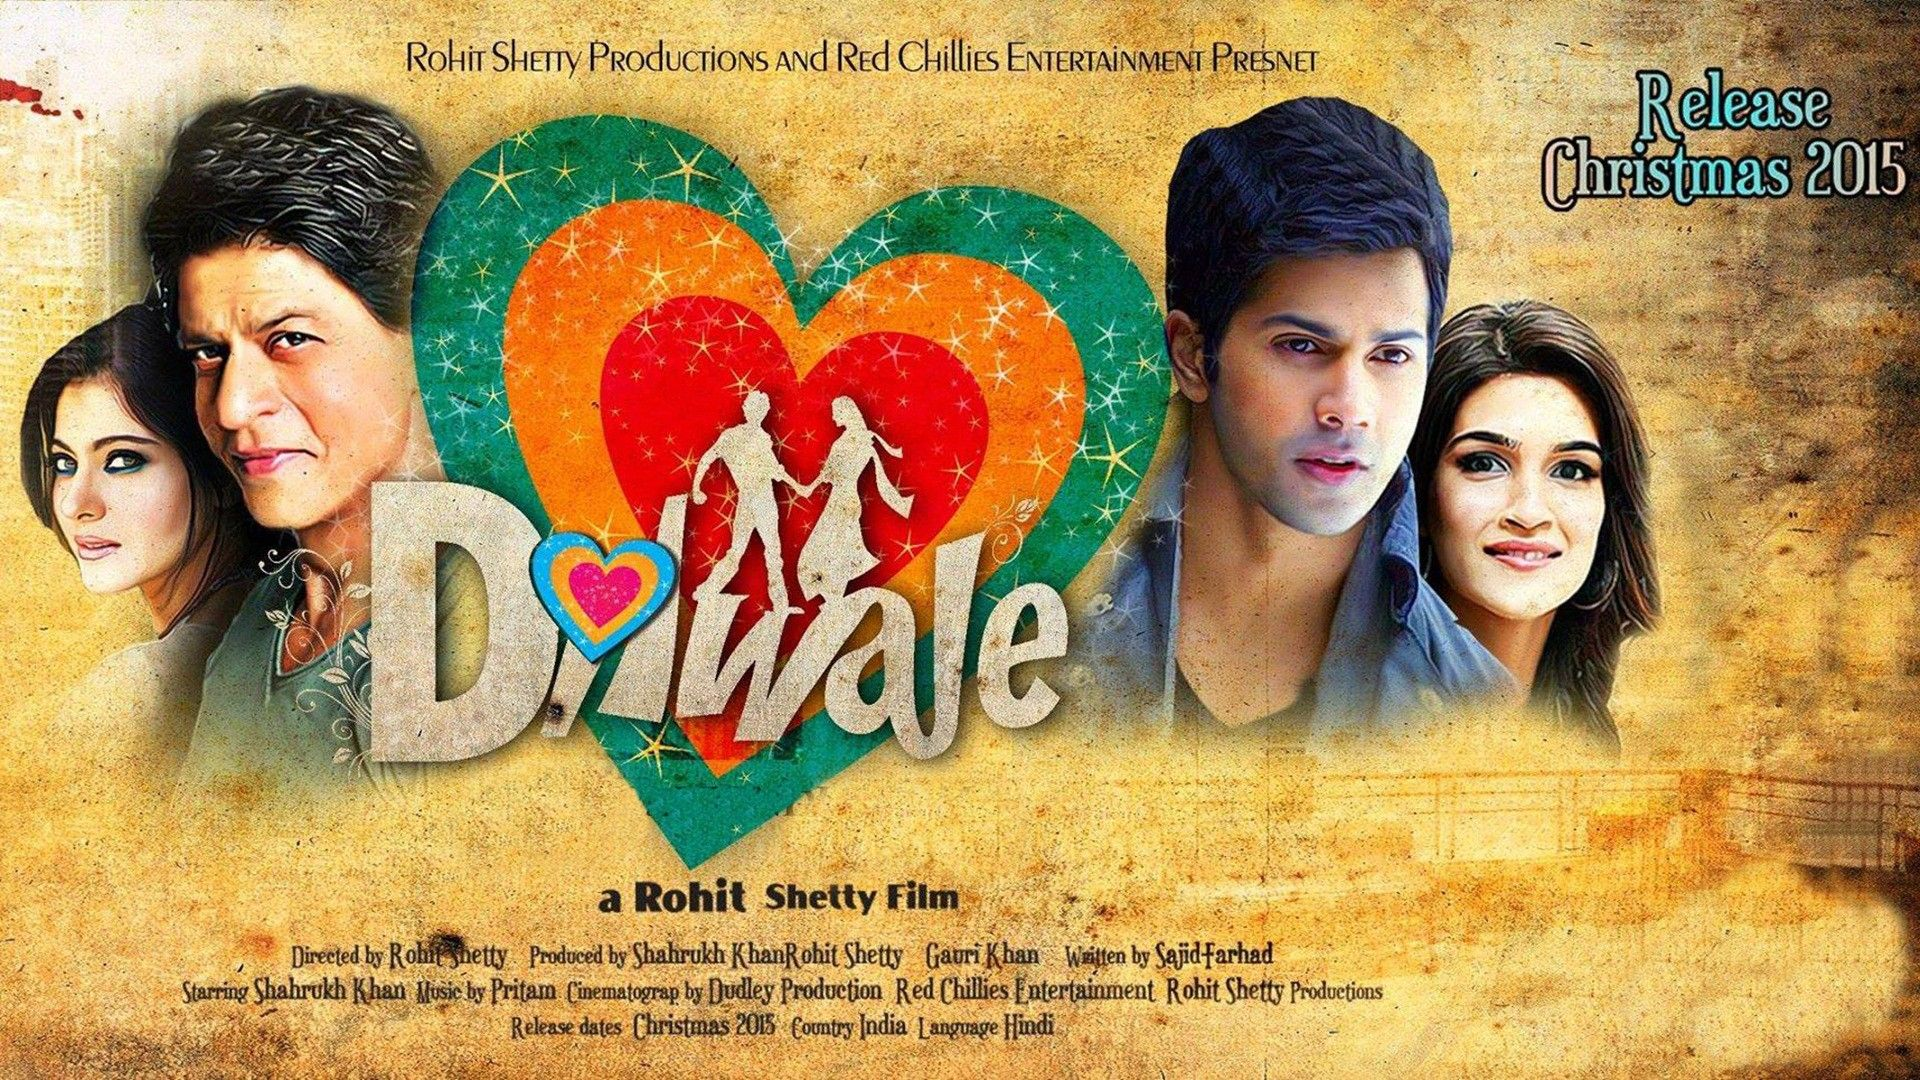 Dilwale trailer mp4 download free